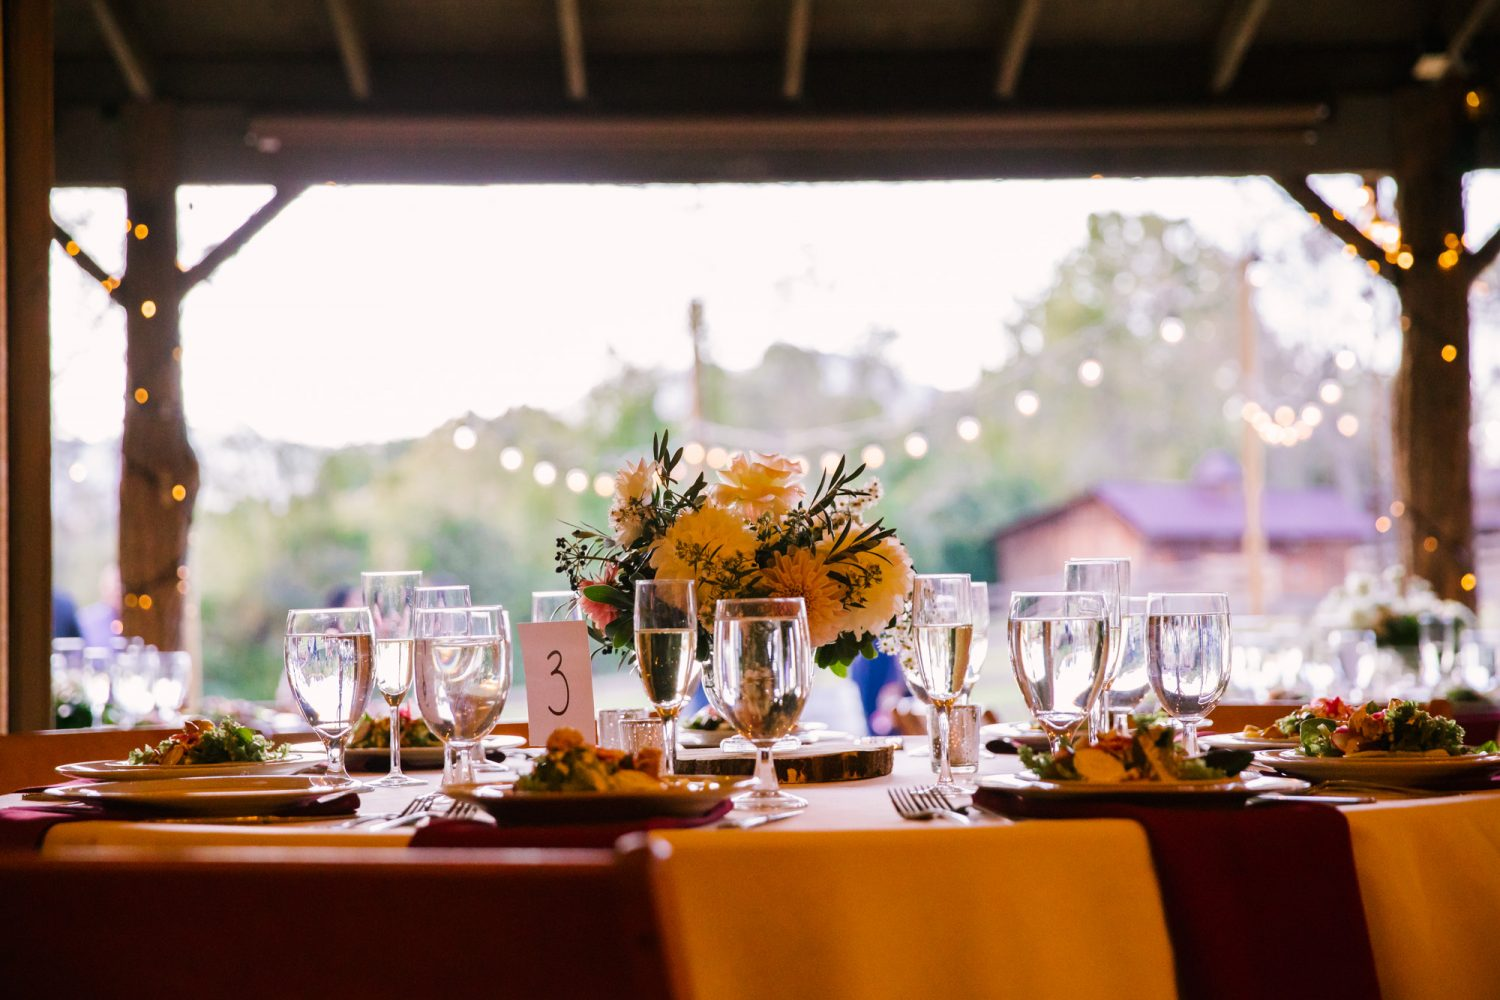 Waynesville NC Wedding Photography | Table Setting with Cafe Lights in the Background